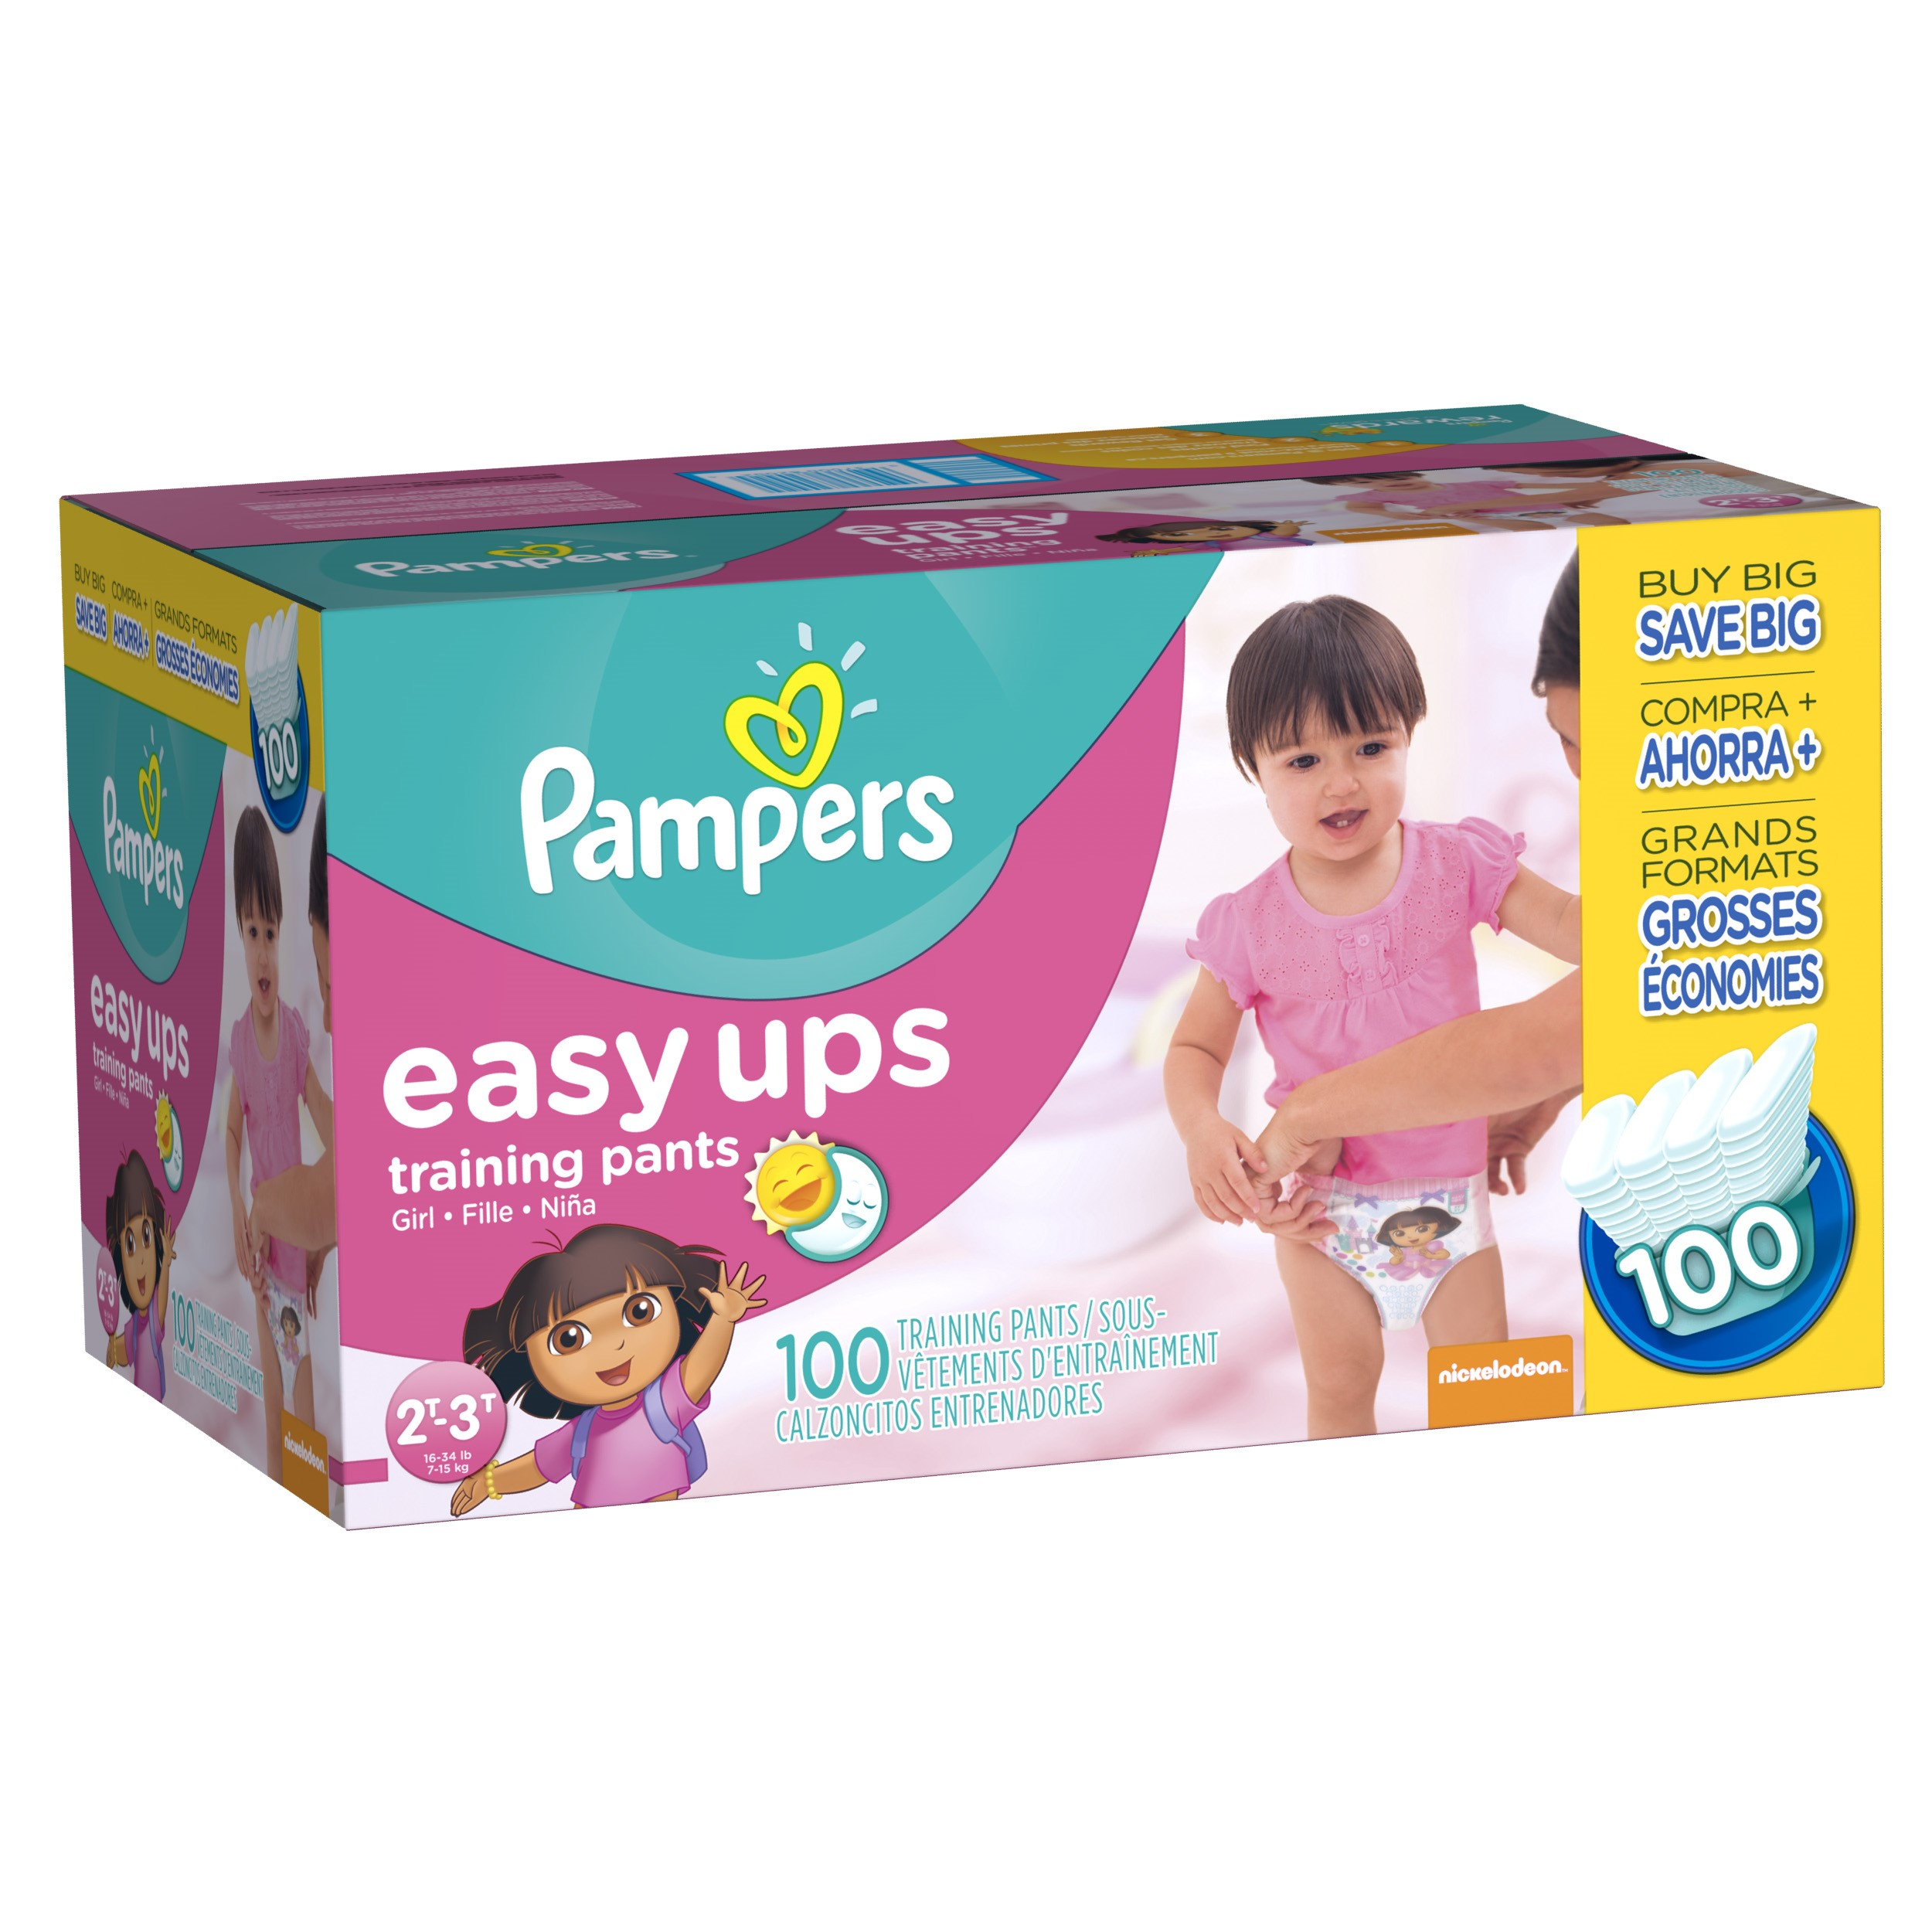 Pampers Easy Ups Girls Training Pants, Size 2T-3T, 100 Pants